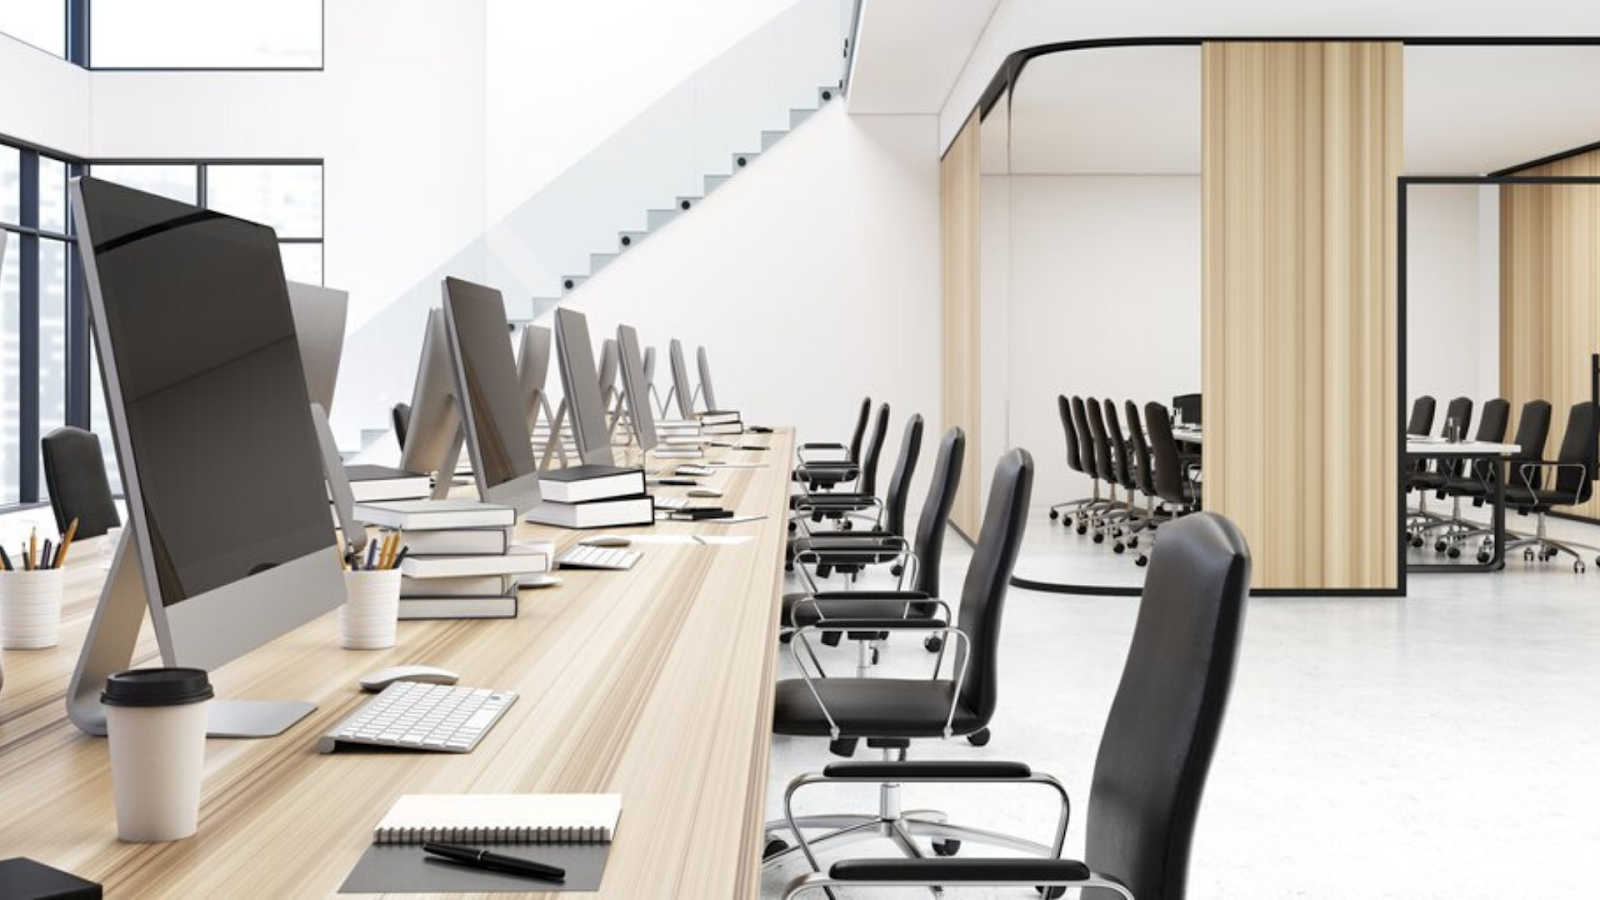 Guide to Select the Right Commercial Office Furniture